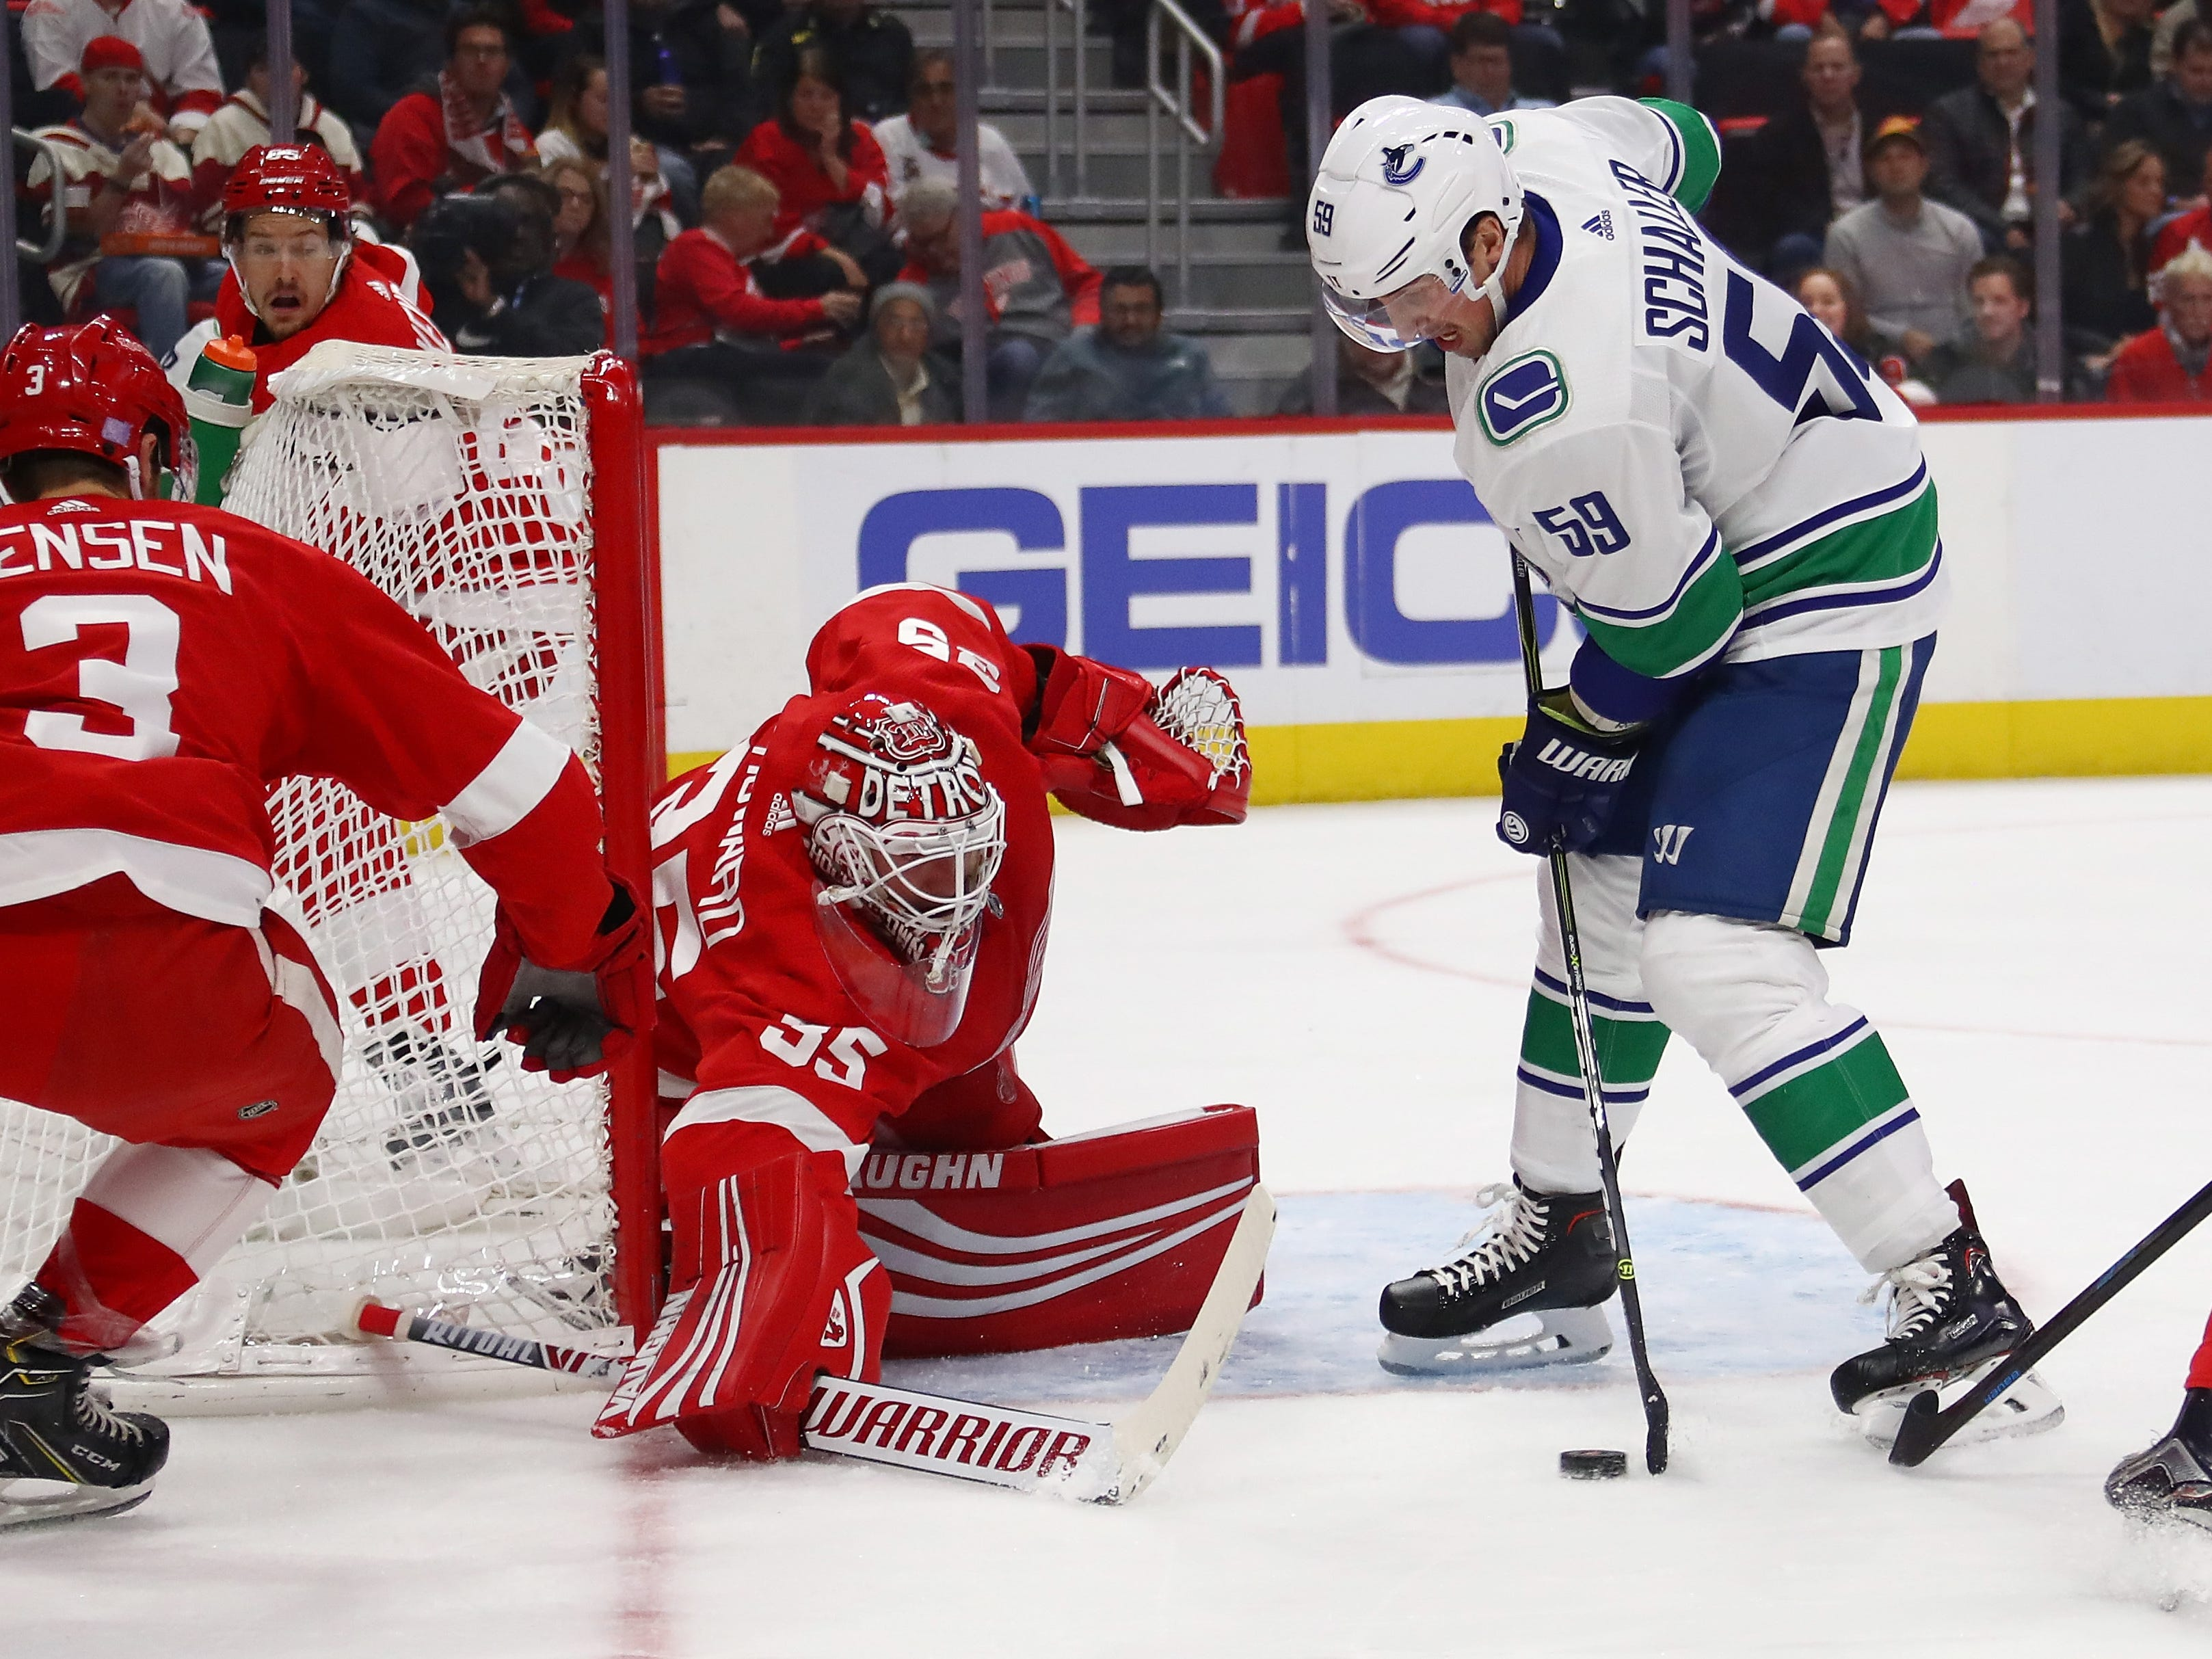 Jimmy Howard (35) of the Detroit Red Wings makes a first period save on Tim Schaller (59) of the Vancouver Canucks at Little Caesars Arena.